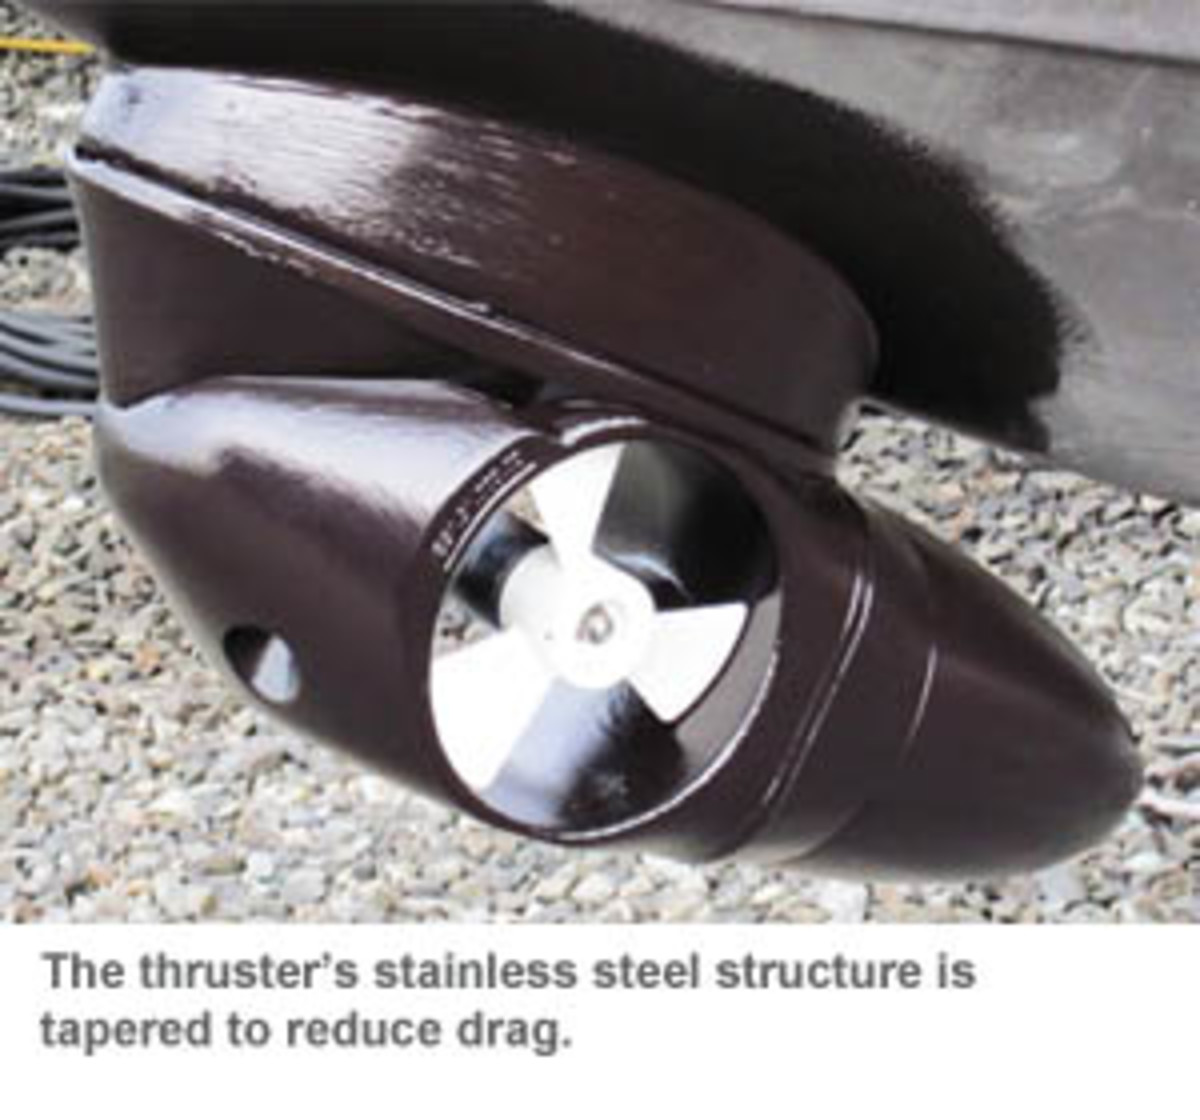 The thruster's stainless steel structure is tapered to reduce drag.